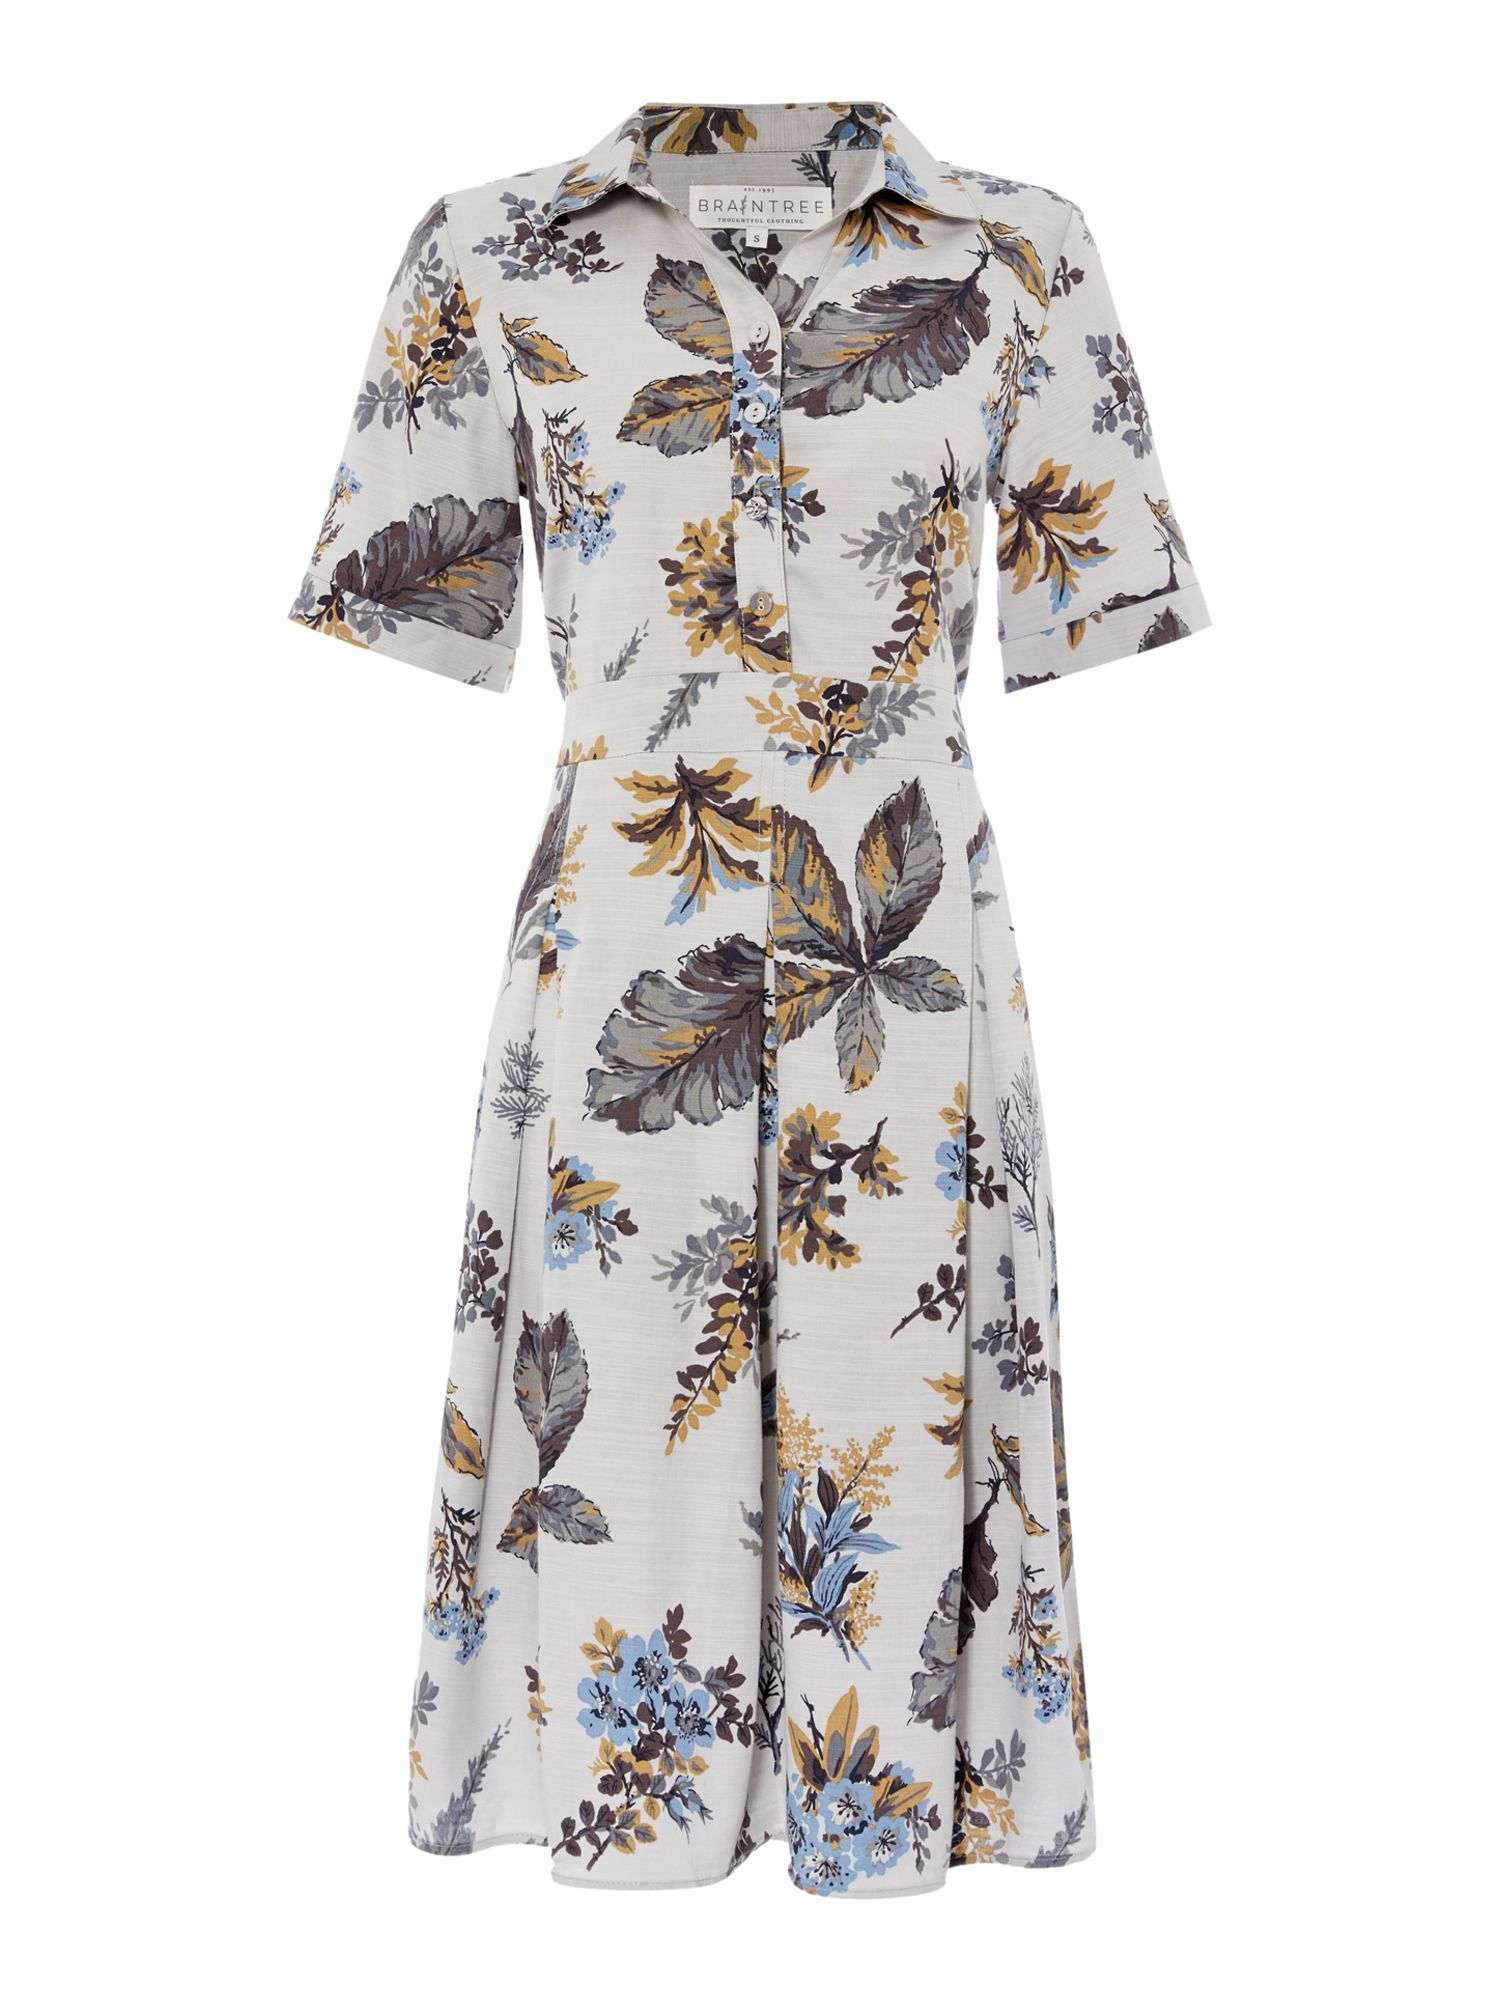 ad3e68be0d6 Braintree Printed Shirt Dress in Gray - Lyst